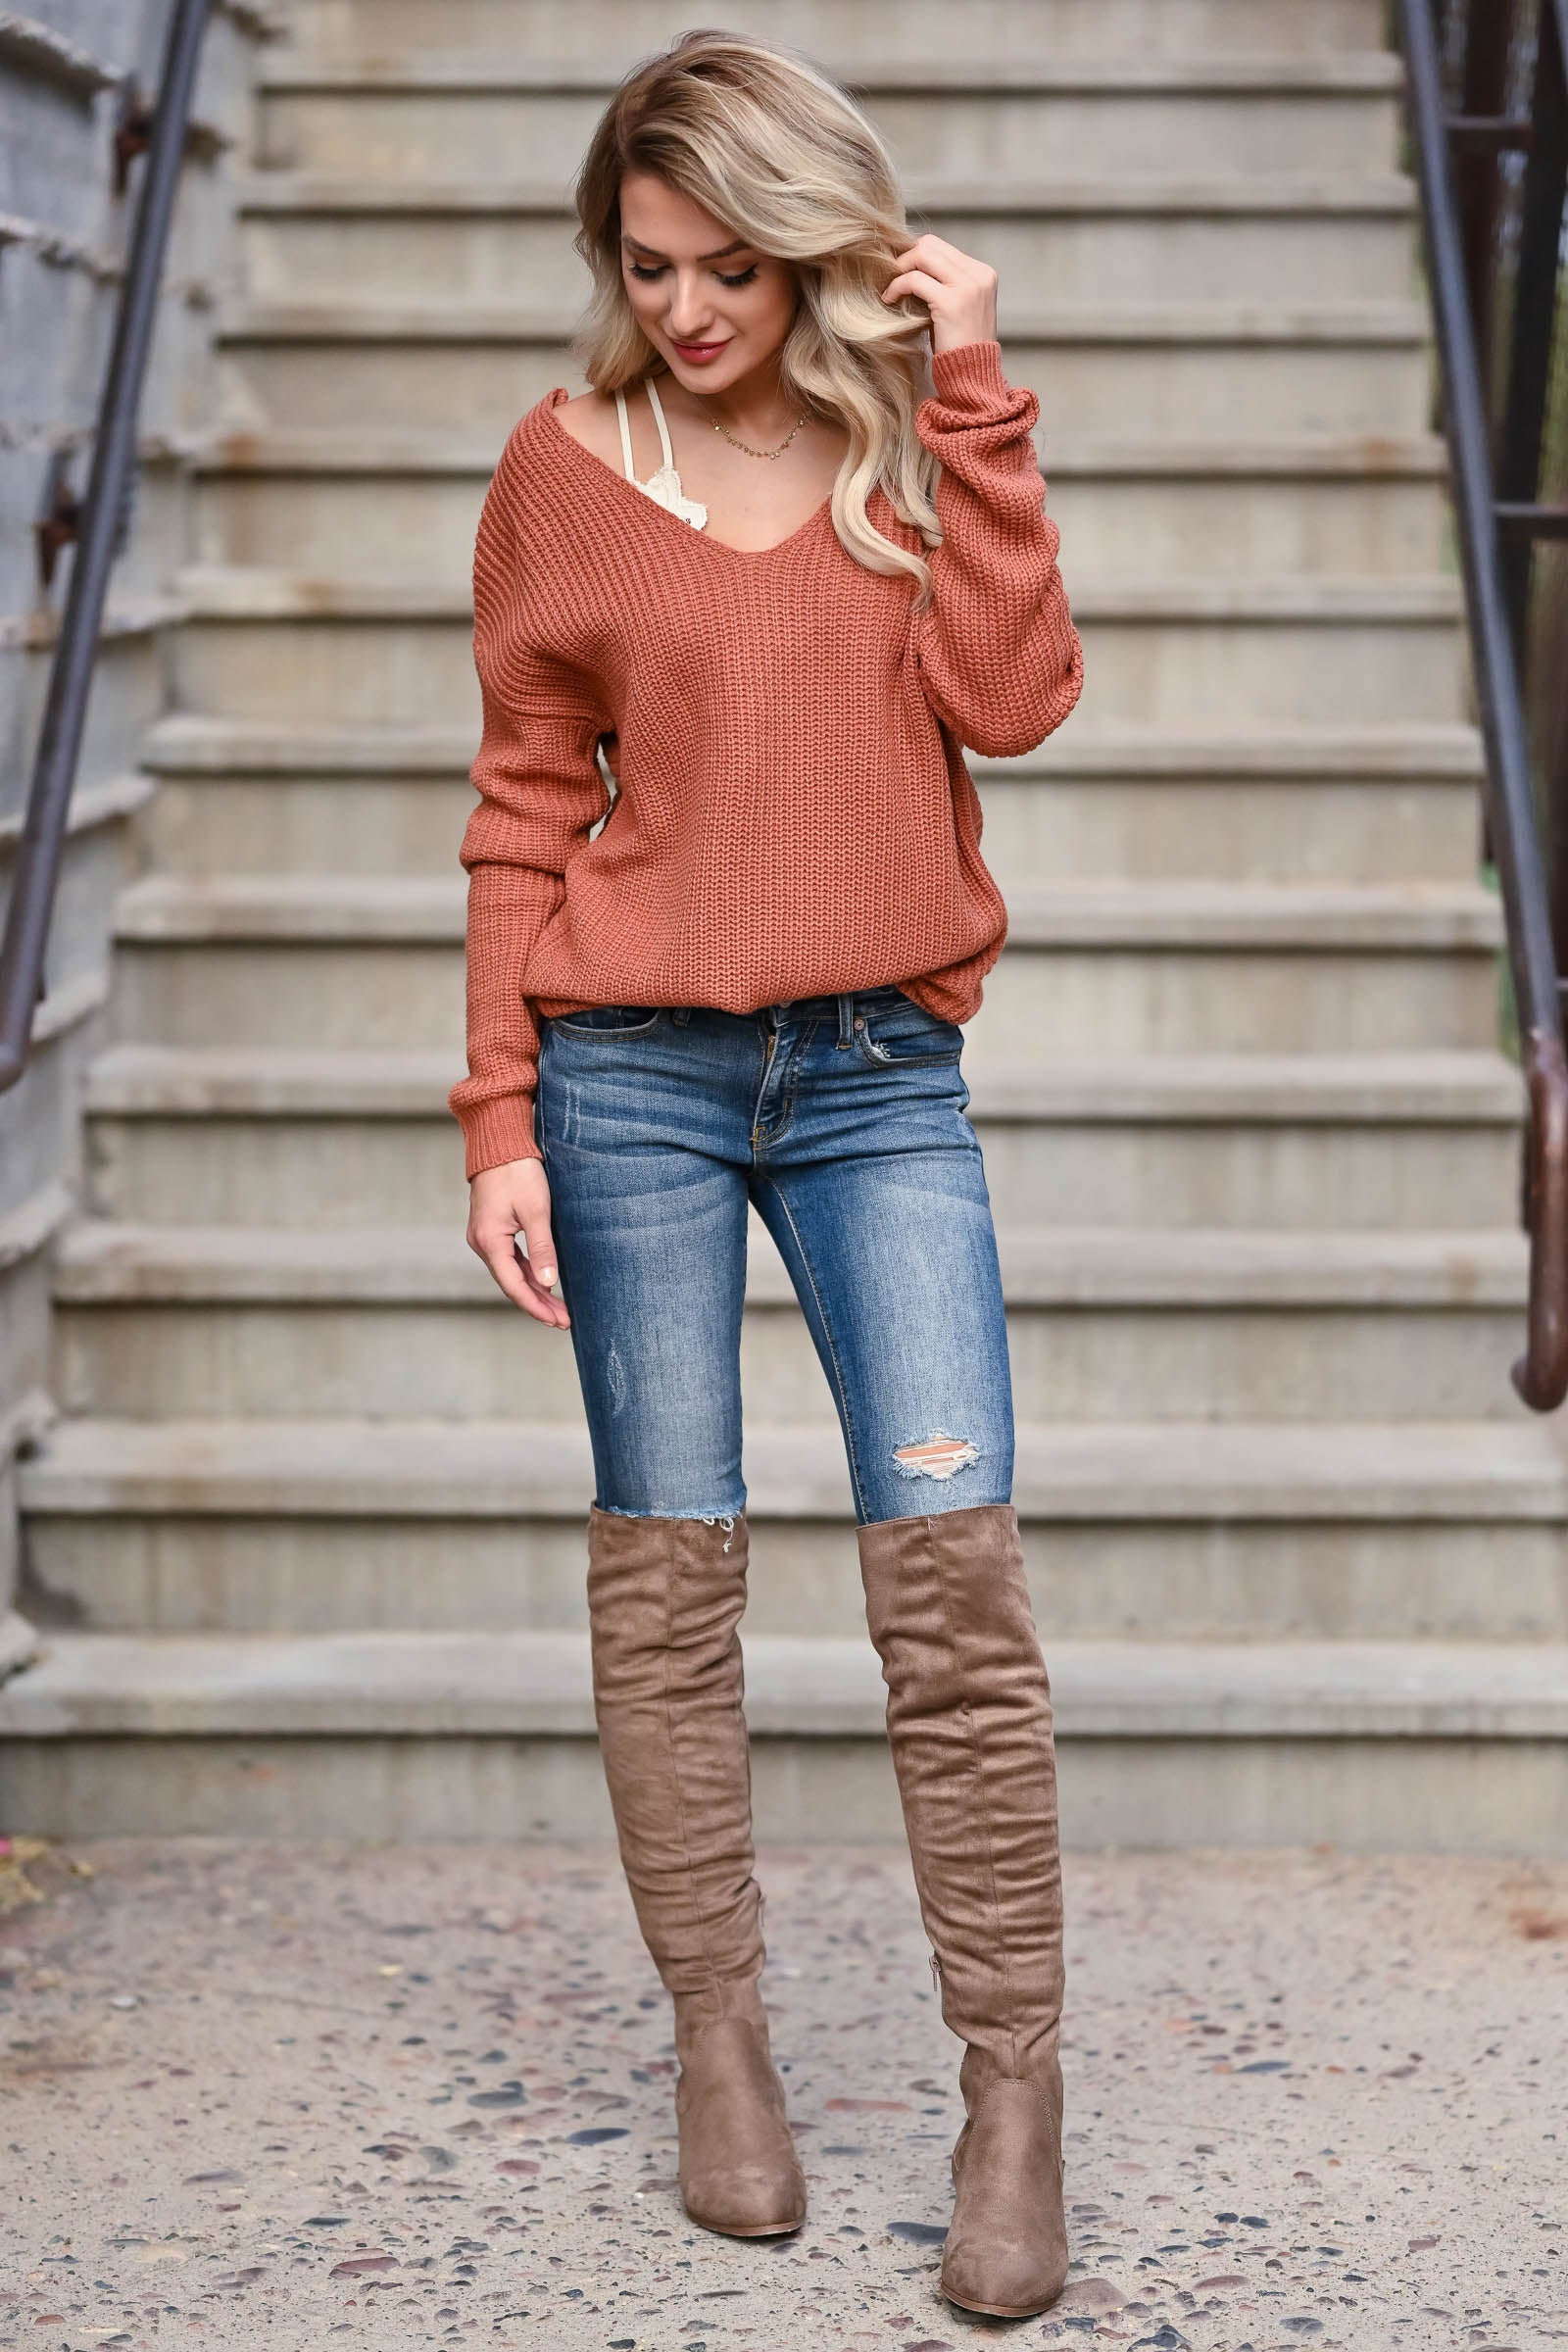 Walk On Over Knee High Boots - Taupe